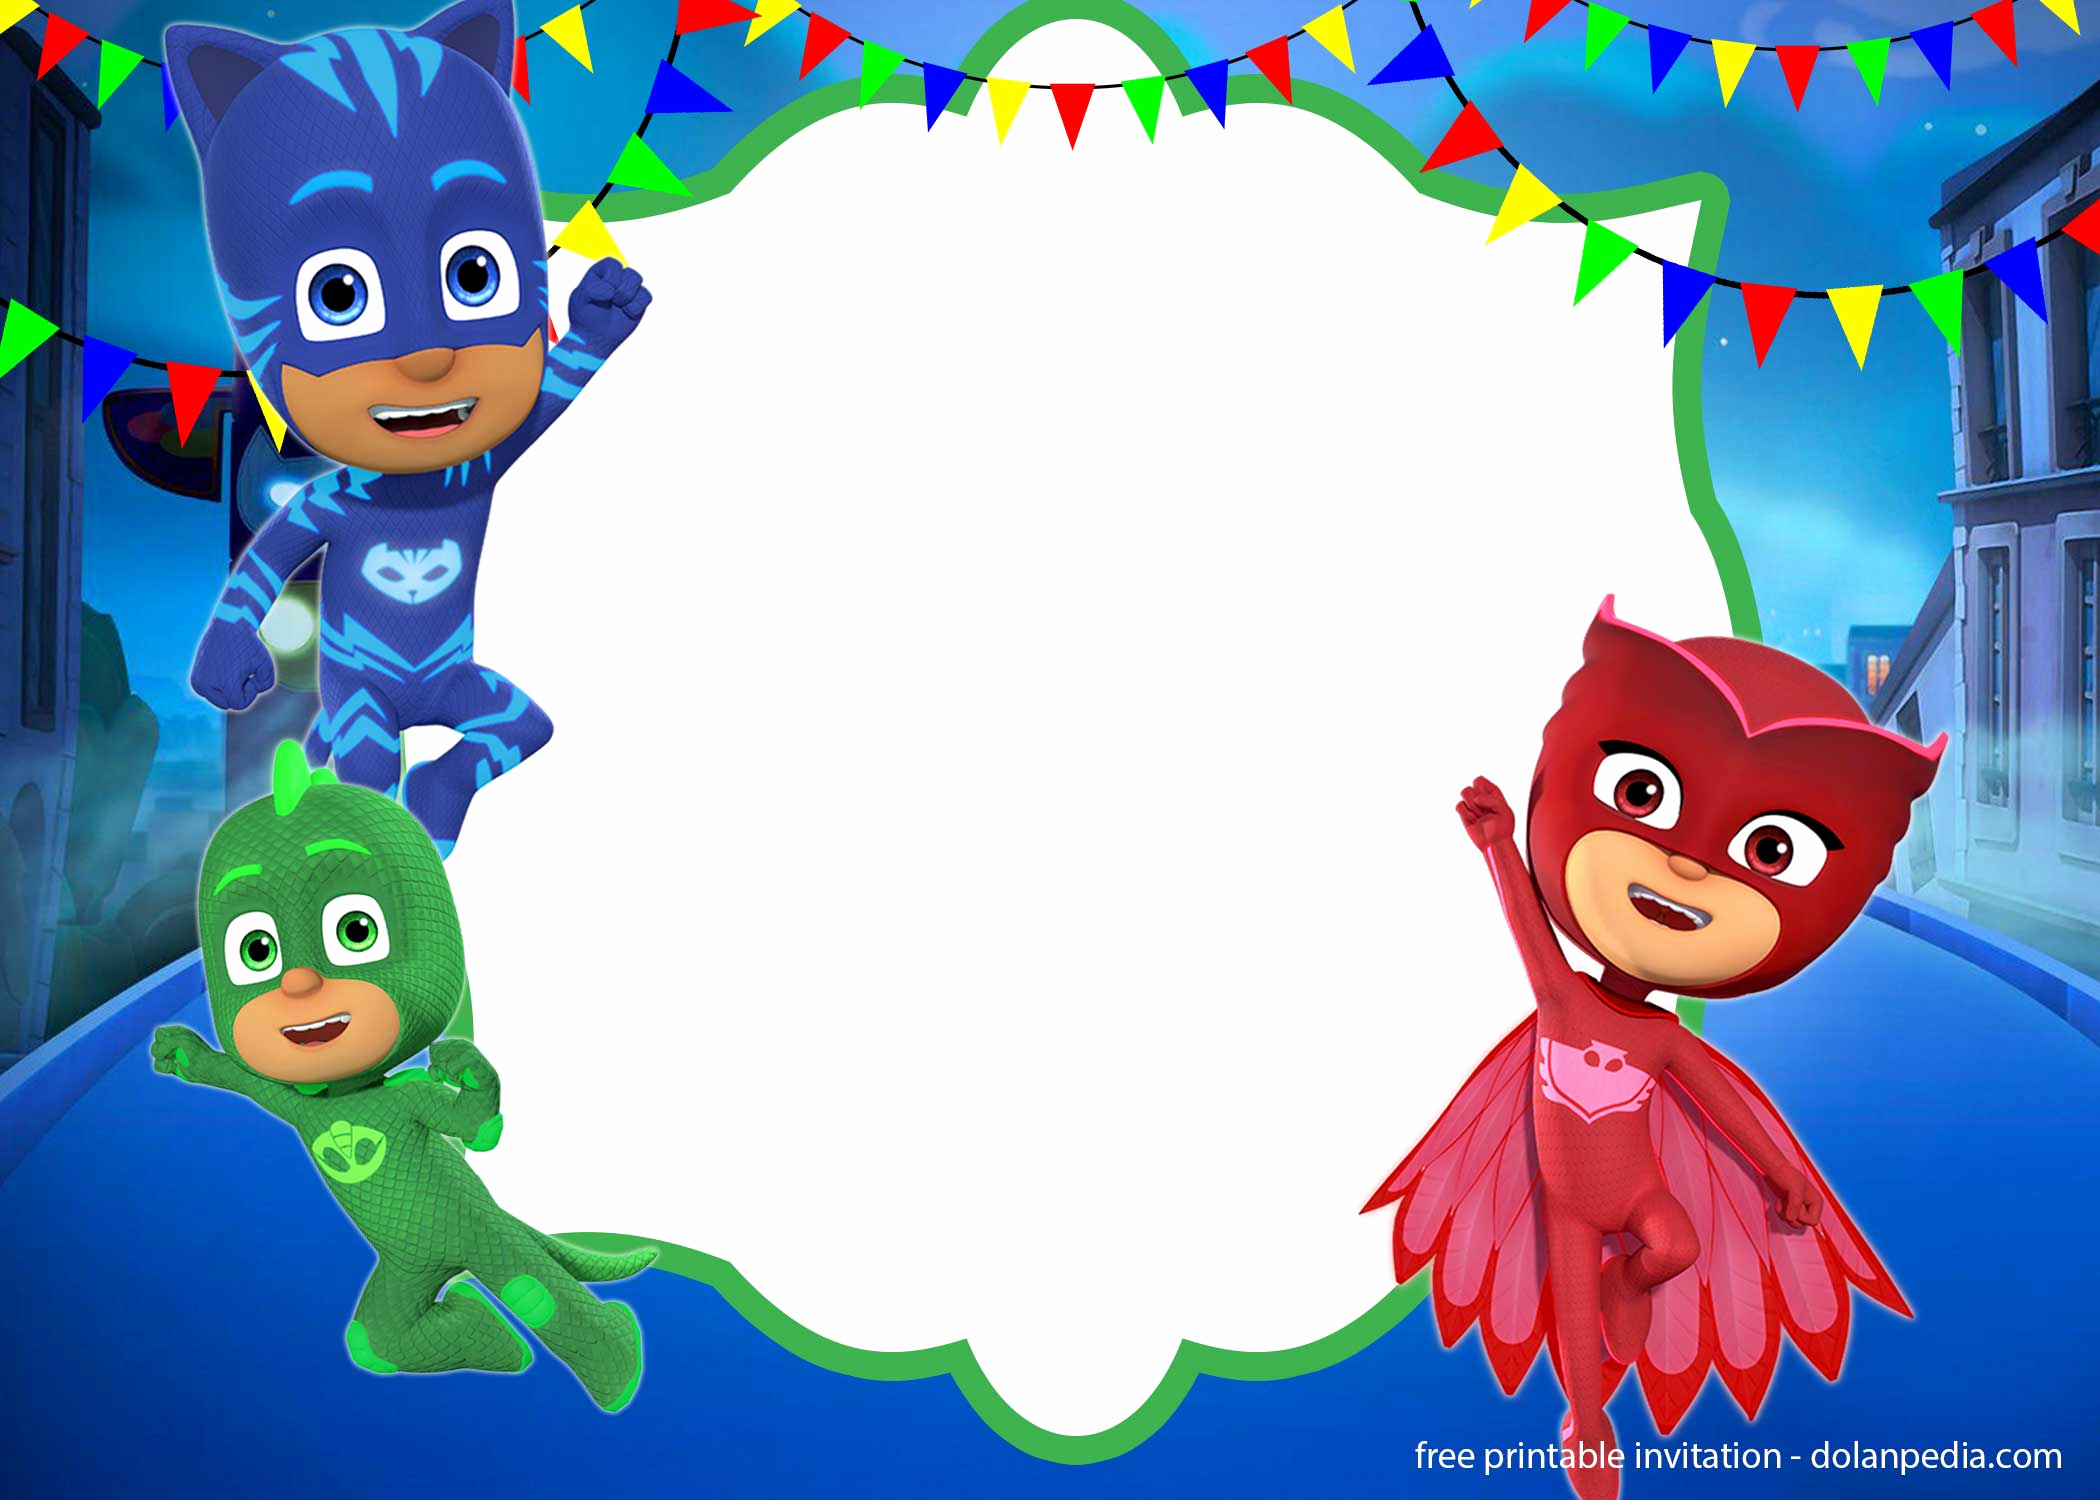 Pj Masks Invitation Template Lovely Free Pj Masks Invitation Templates – Editable and